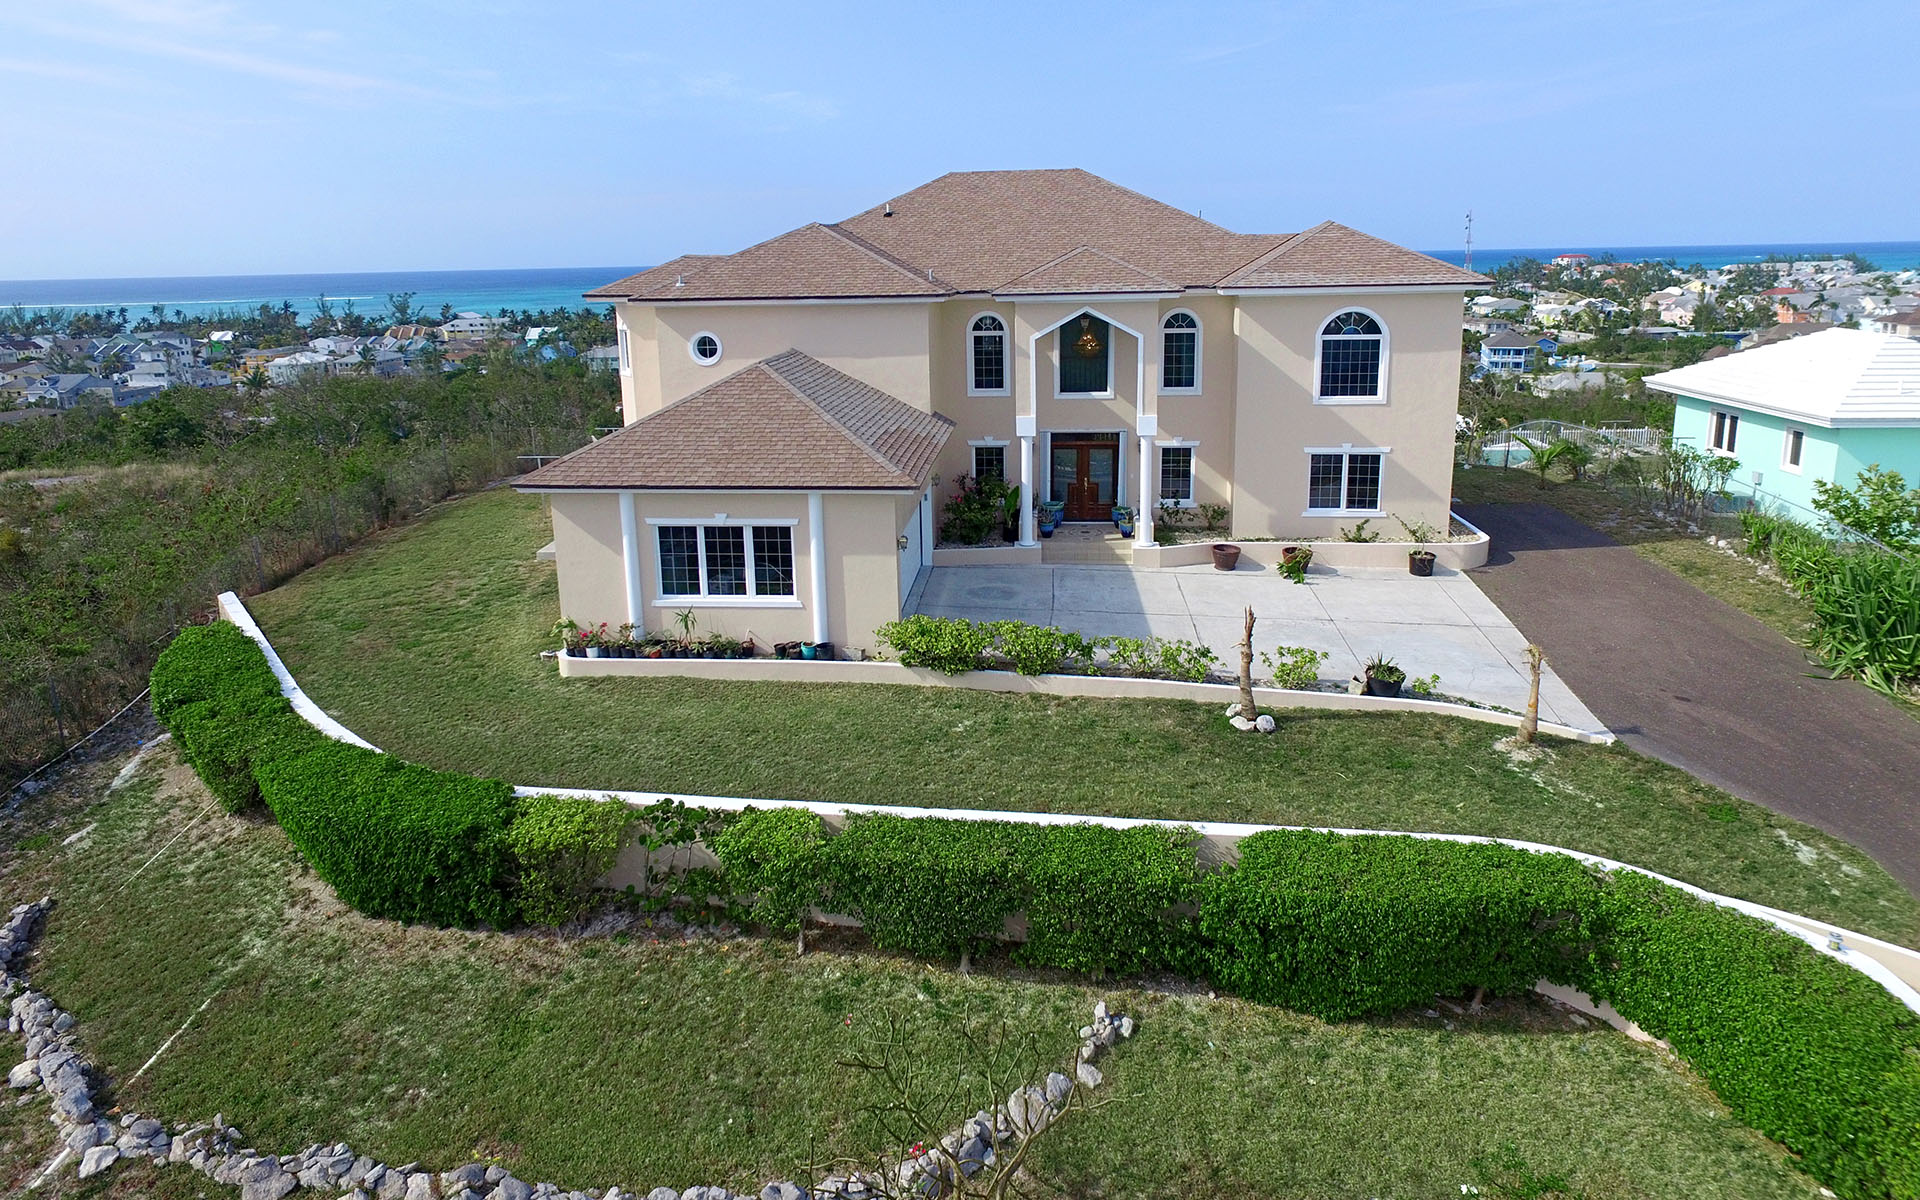 Additional photo for property listing at Large Oceanview Hilltop Home in Westridge  MLS 27832 Nassau New Providence And Vicinity